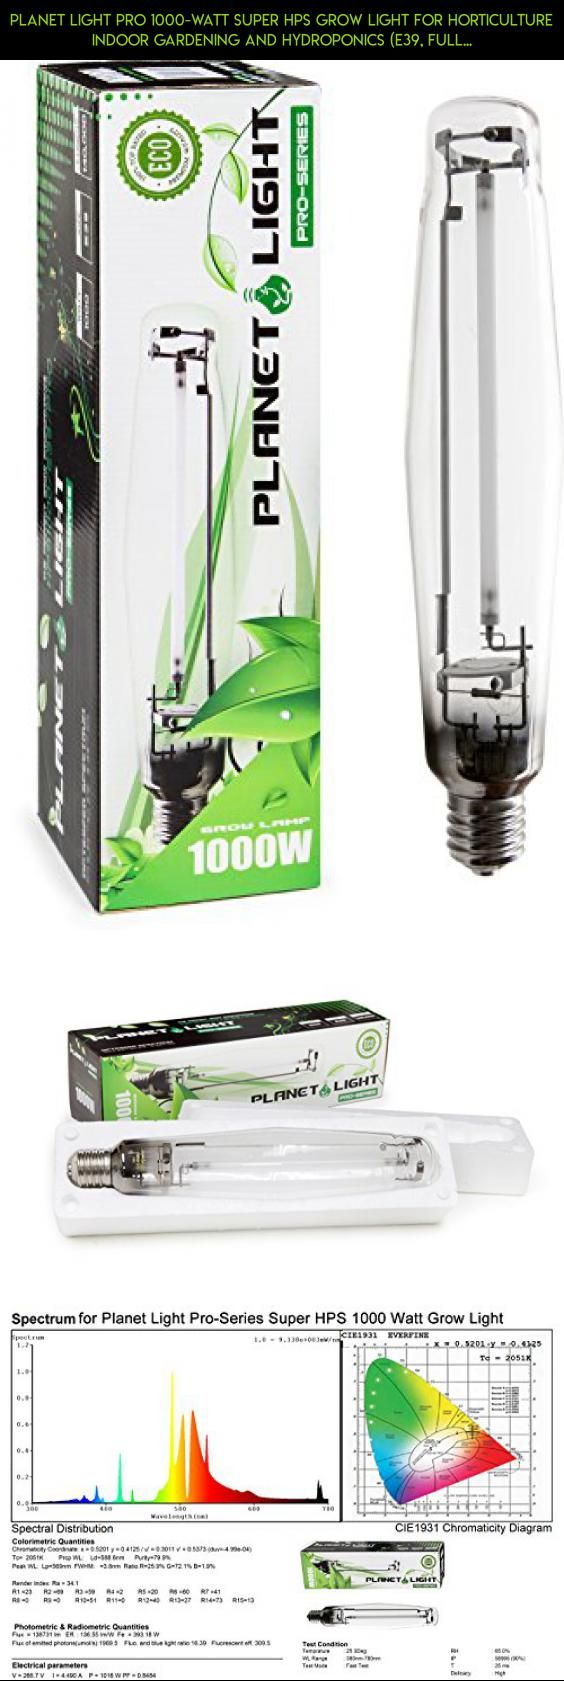 Planet Light Pro 1000-Watt Super HPS Grow Light for Horticulture Indoor Gardening and Hydroponics (E39, Full Spectrum, 140000 Lumen, 24000 Hour Lifespan #technology #lights #tech #fpv #drone #gardening #racing #parts #gadgets #shopping #products #kit #camera #plans